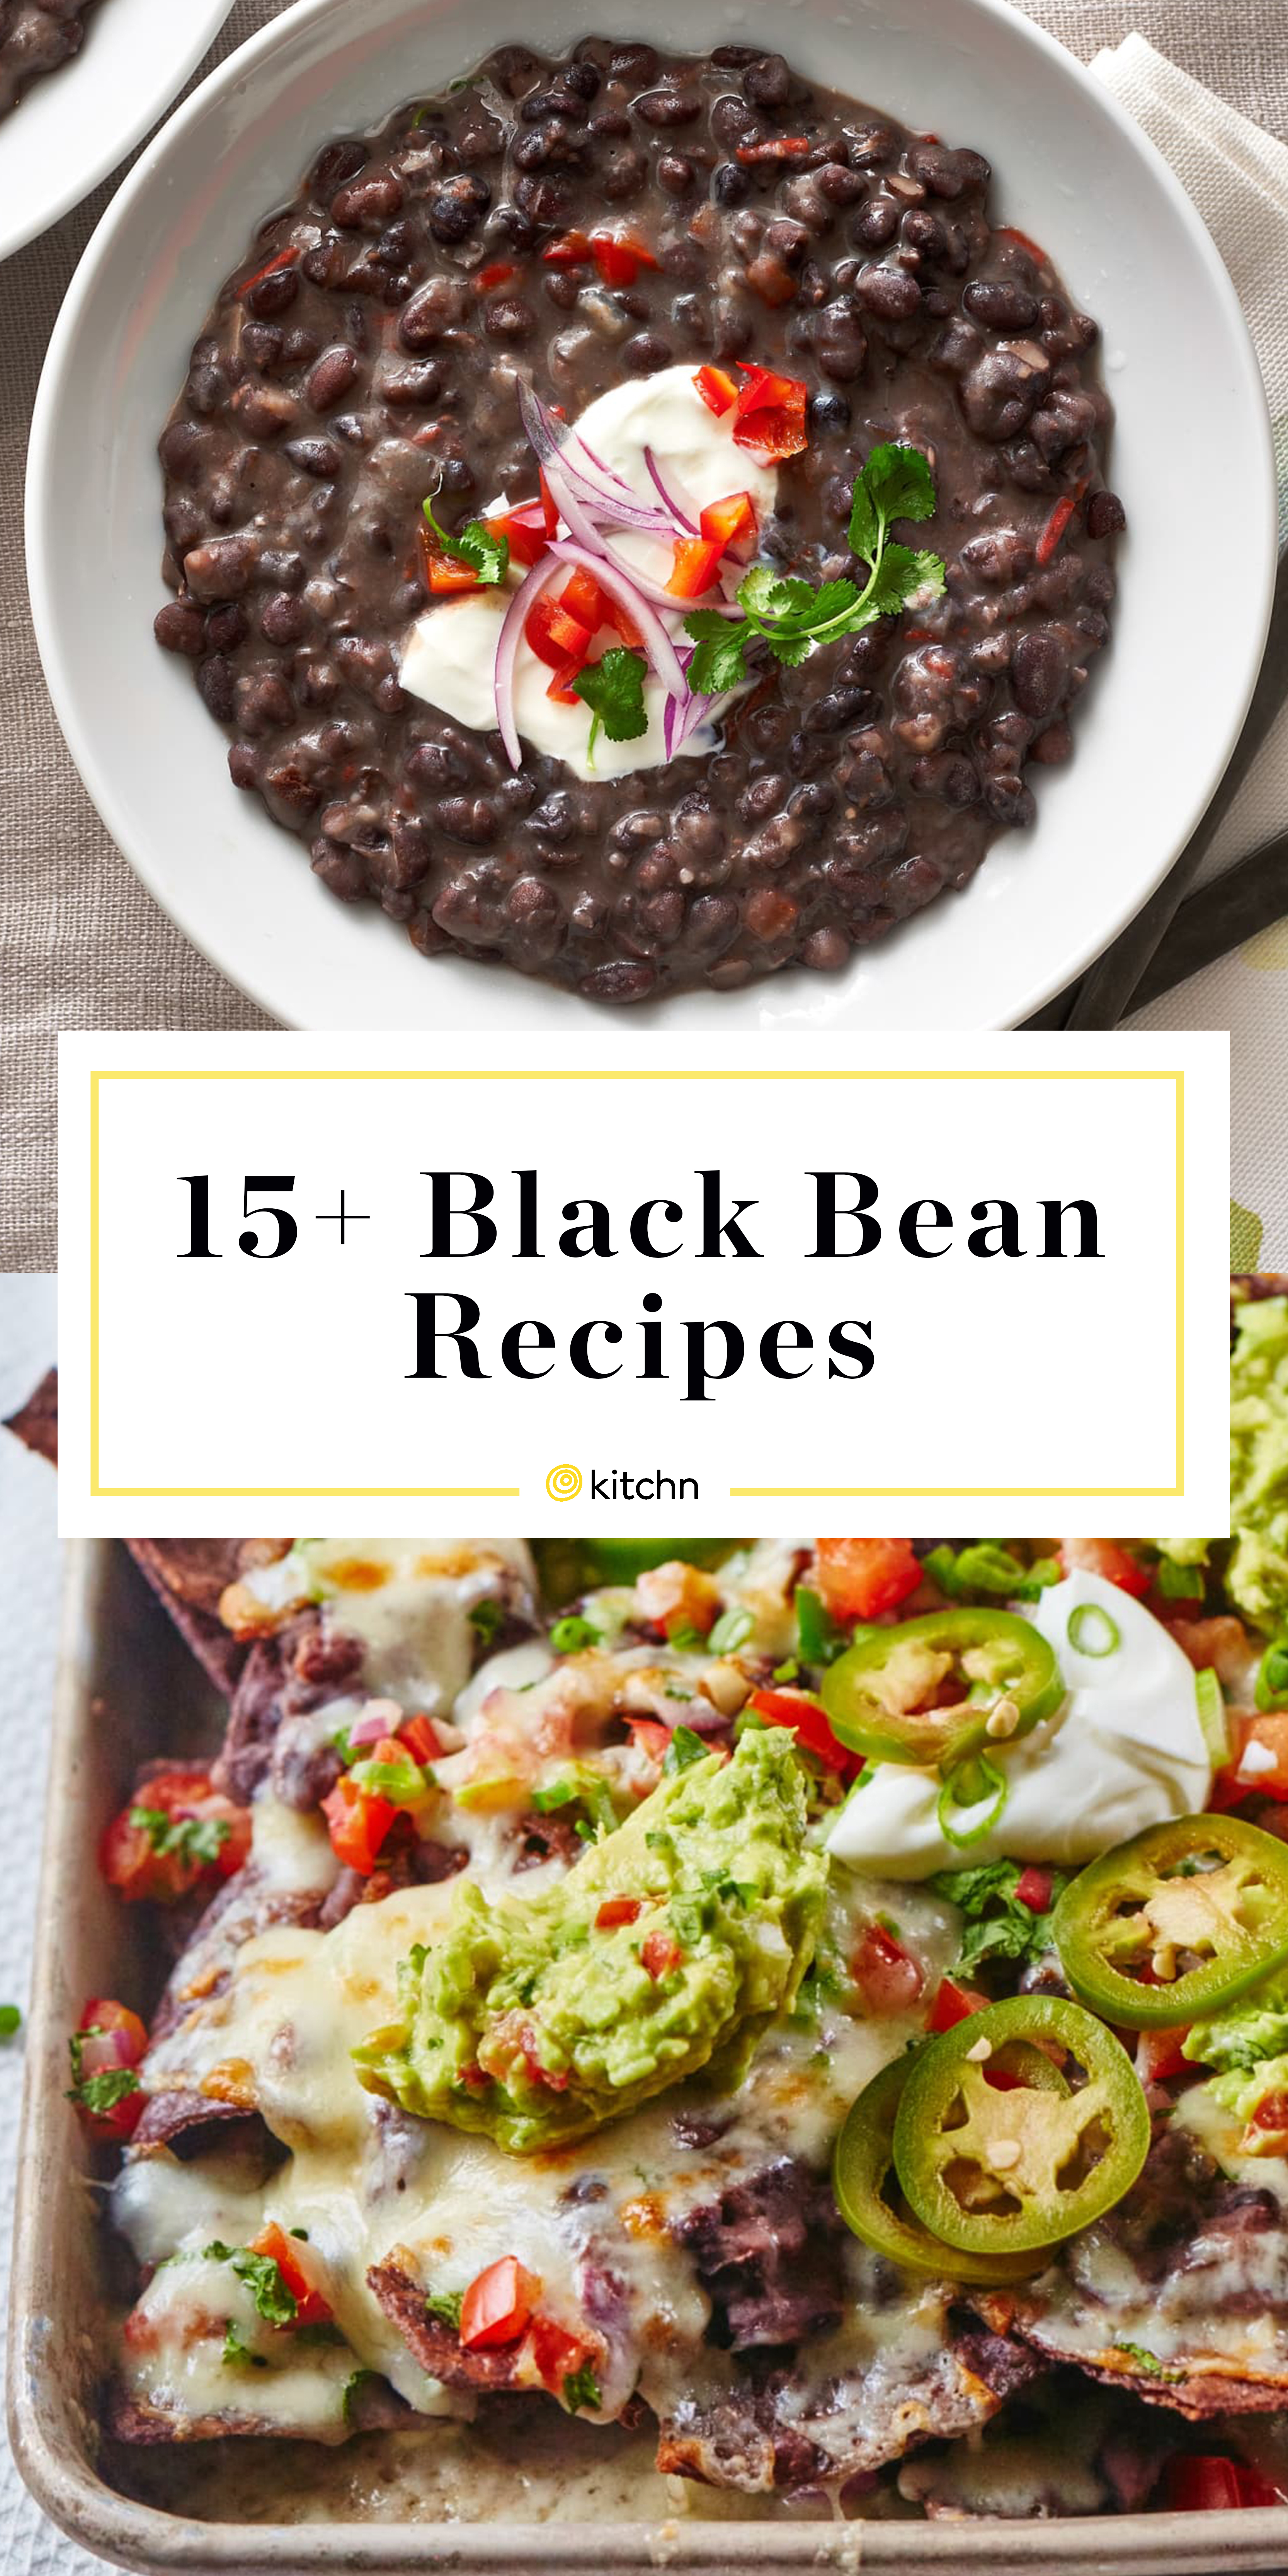 25 Best Black Bean Recipes What To Make With Black Beans Kitchn